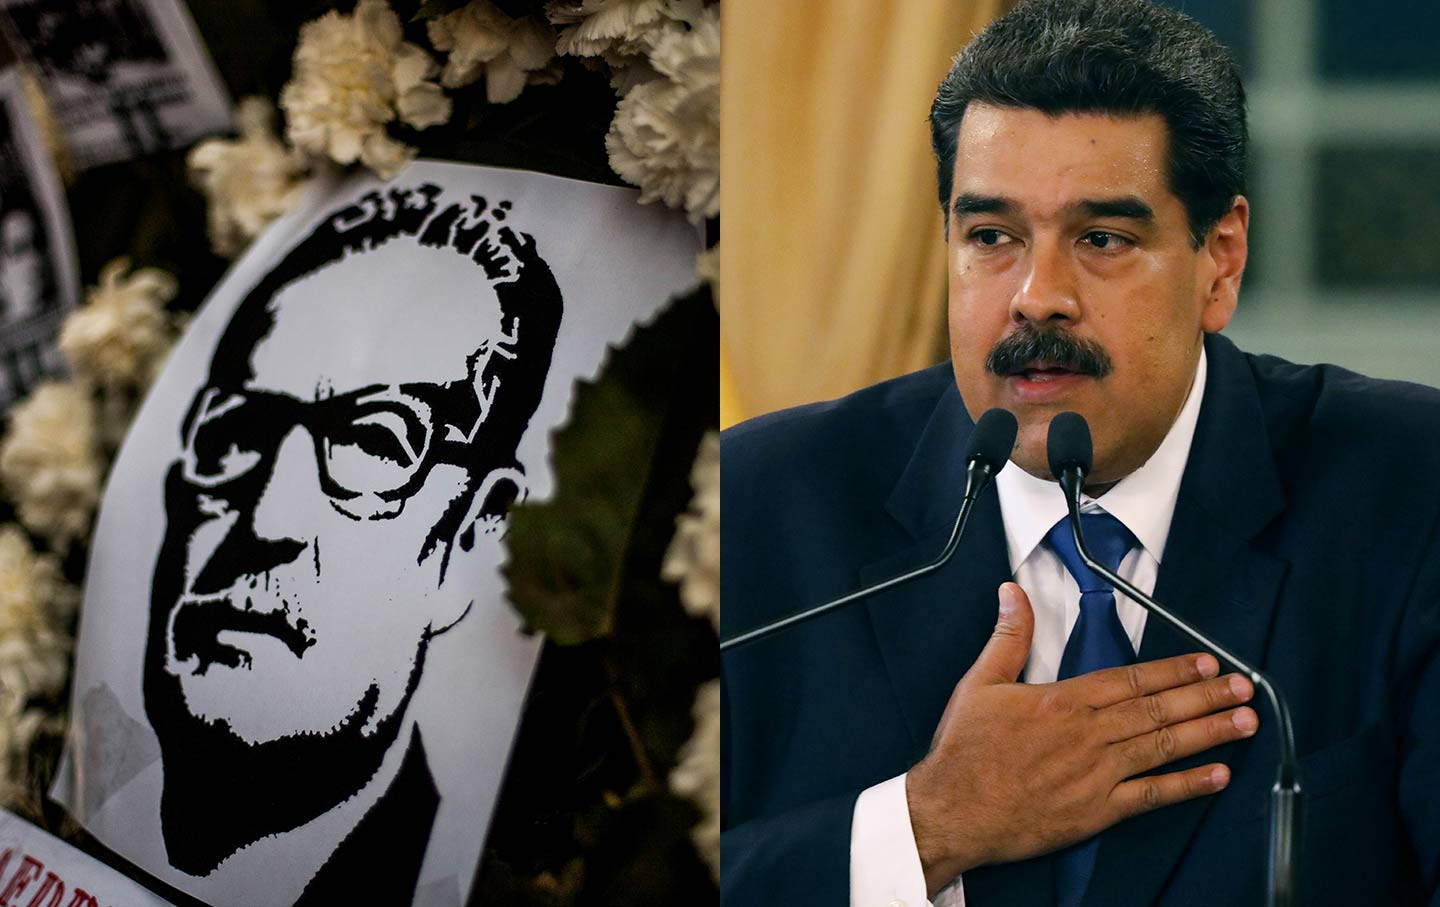 Allende and Maduro